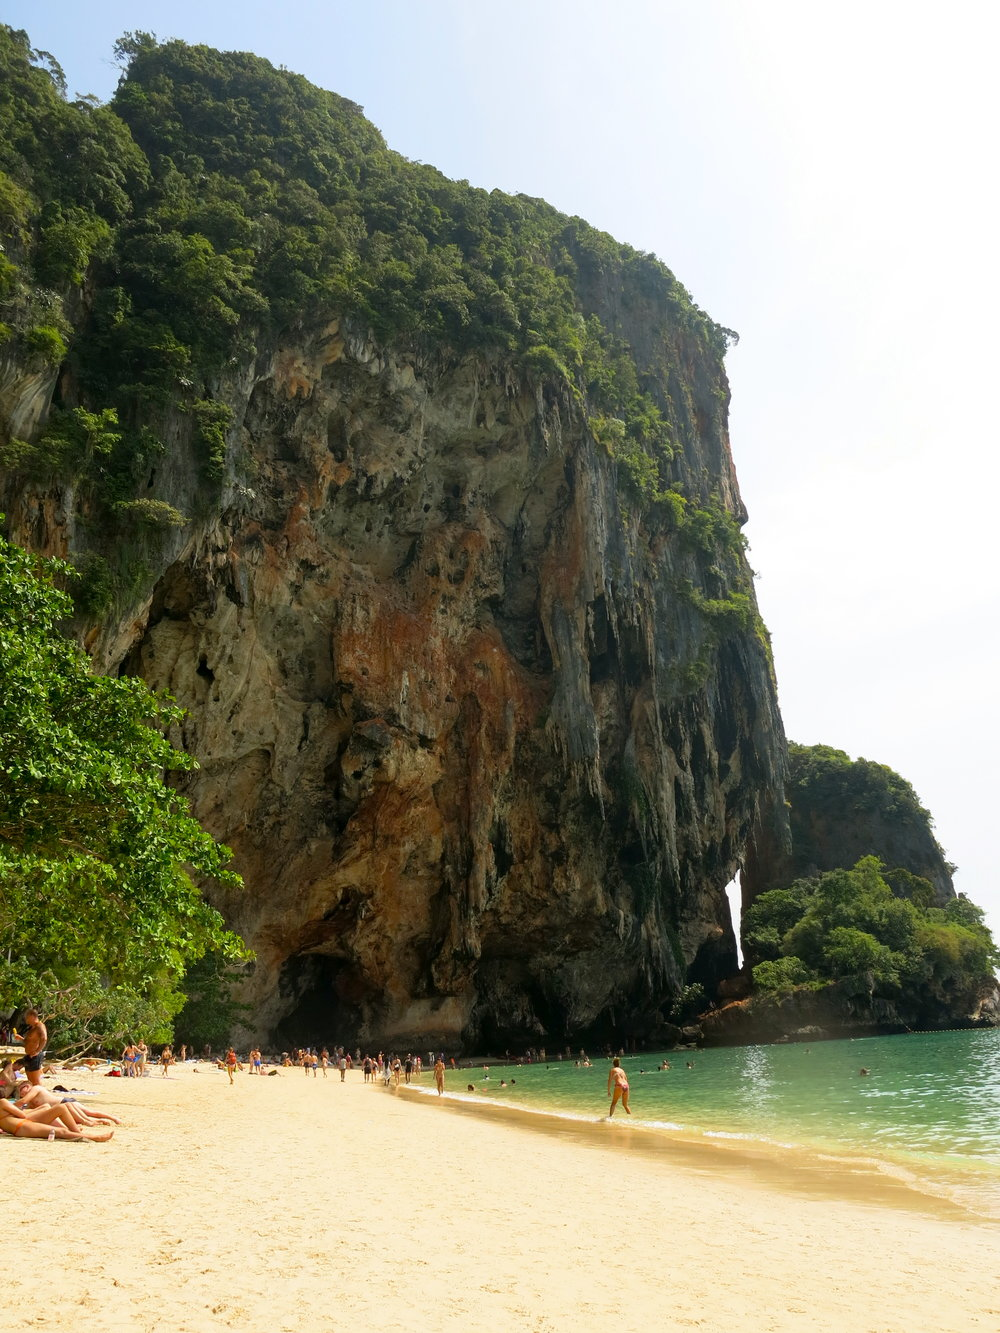 Ao Phra Nang beach with the Princess Cave in the back